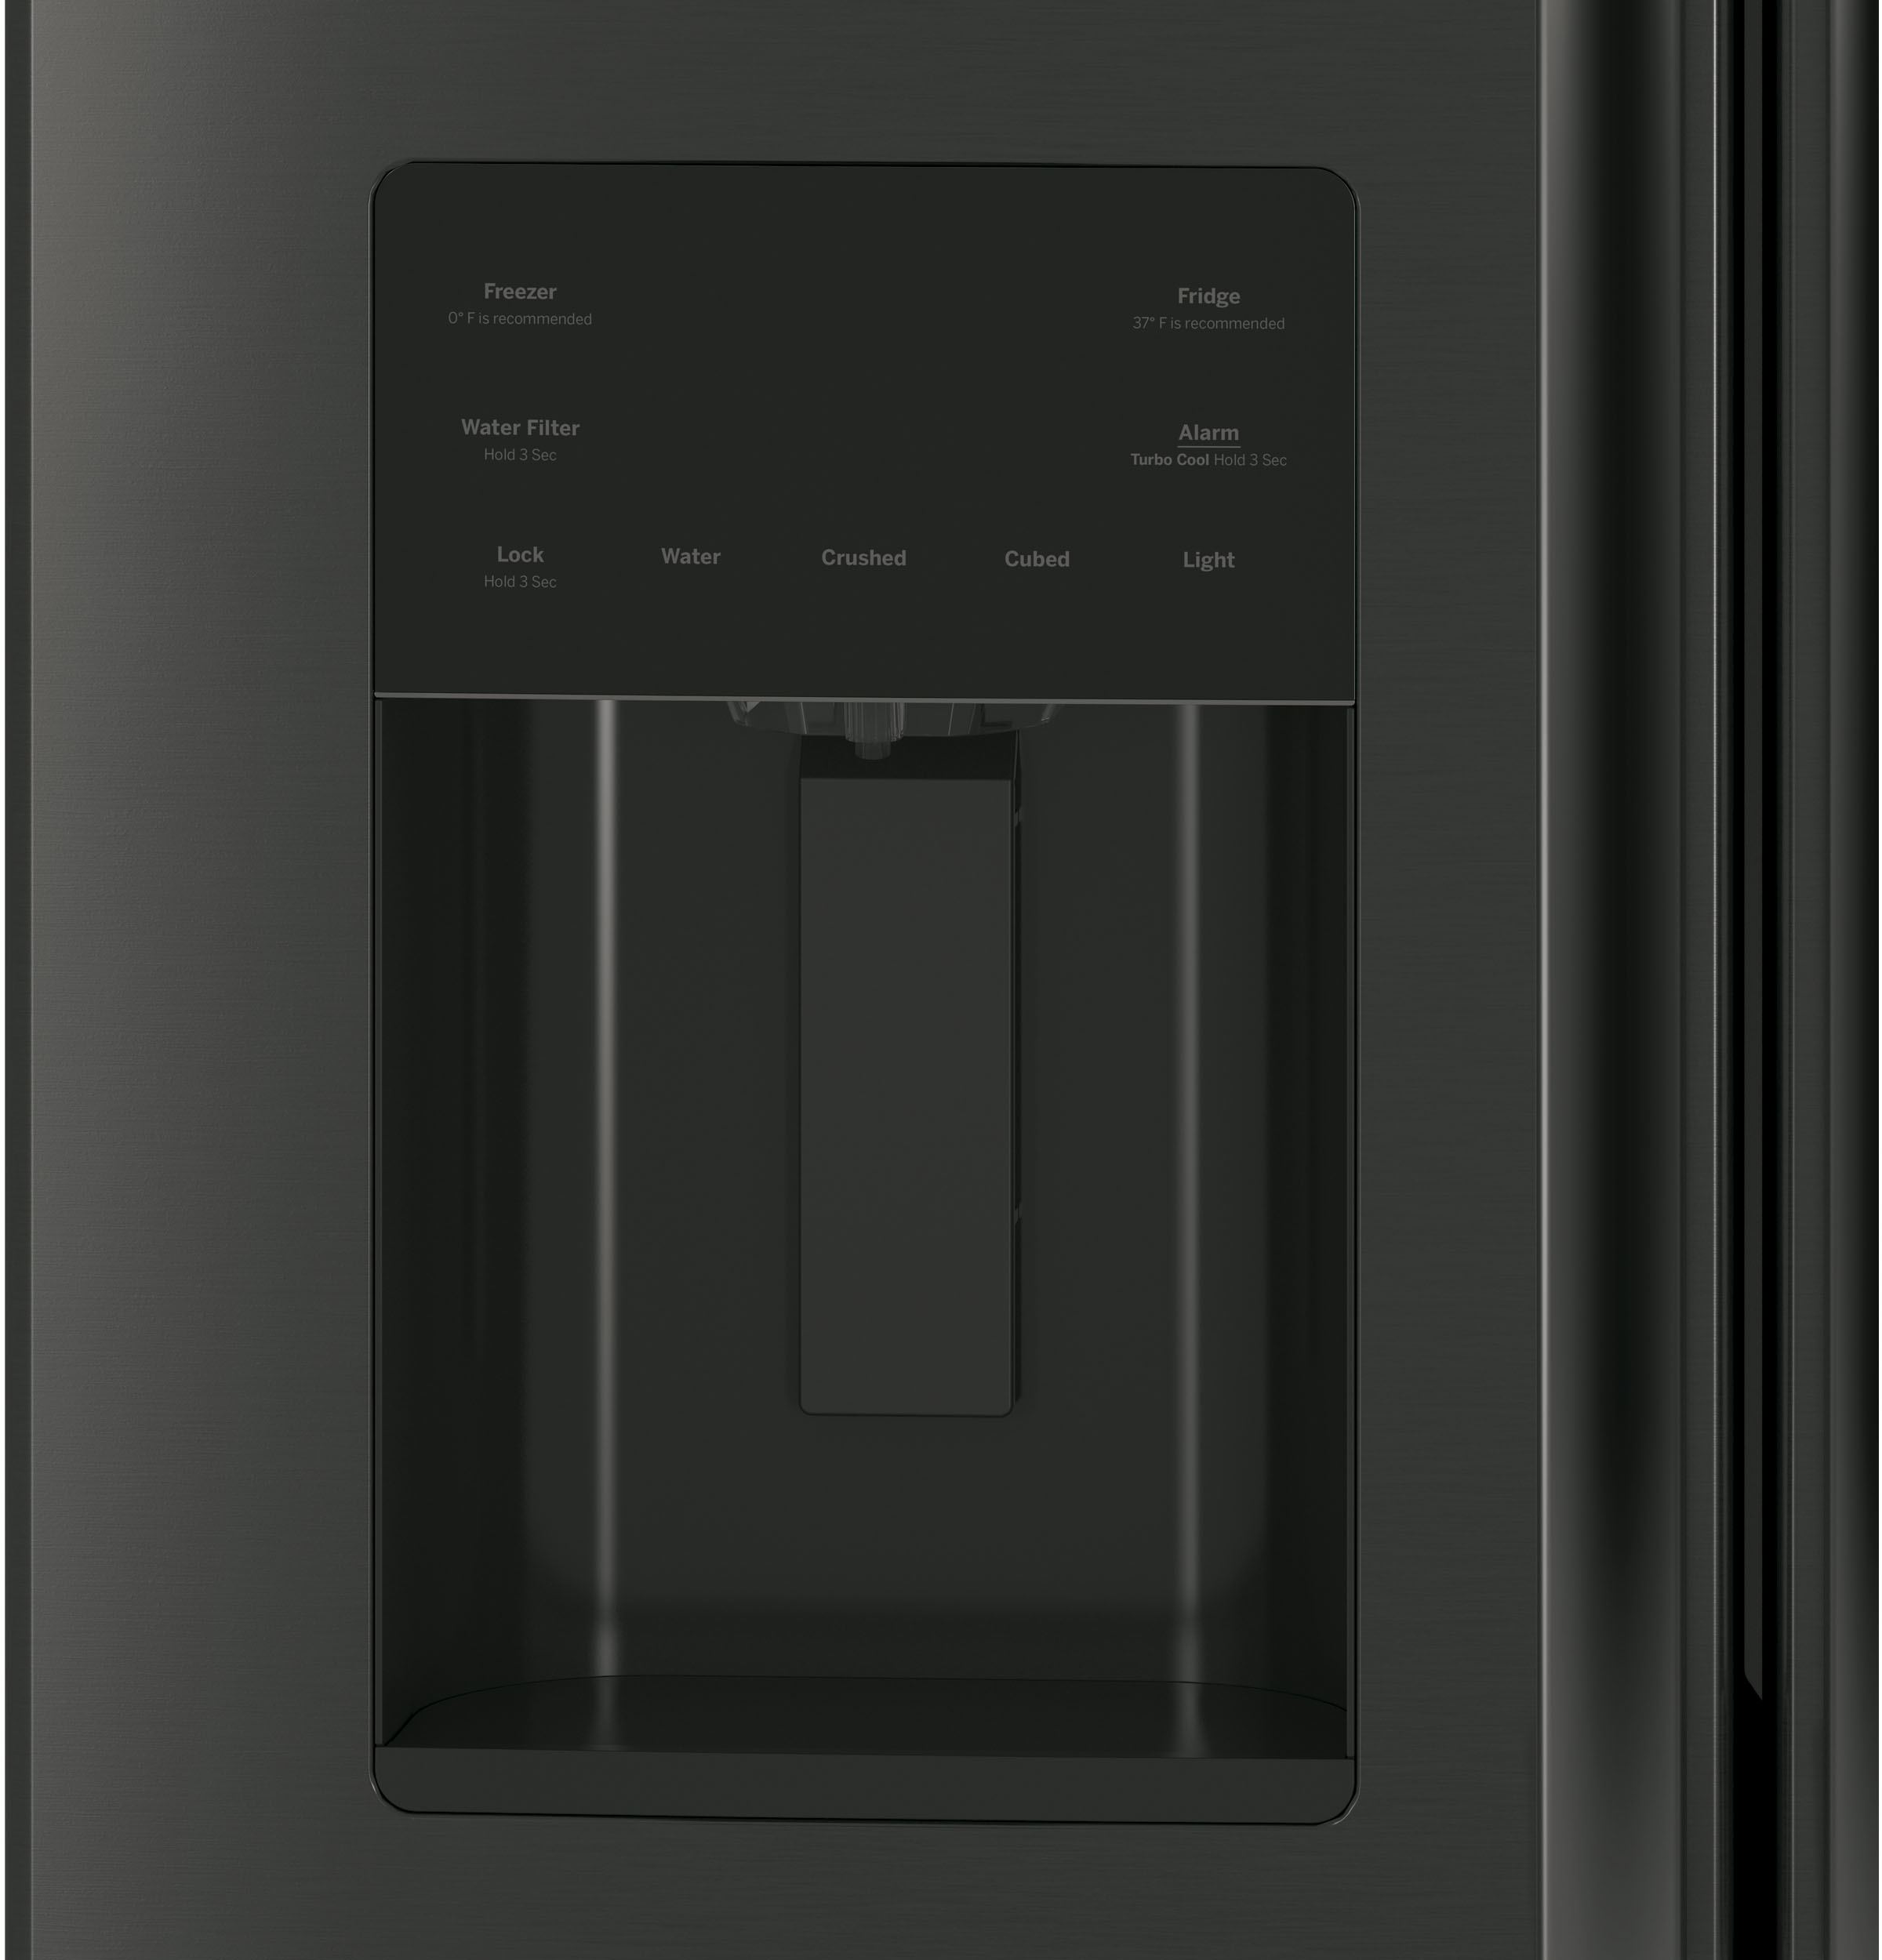 Model: GFE26JBMTS | GE® ENERGY STAR® 25.6 Cu. Ft. French-Door Refrigerator